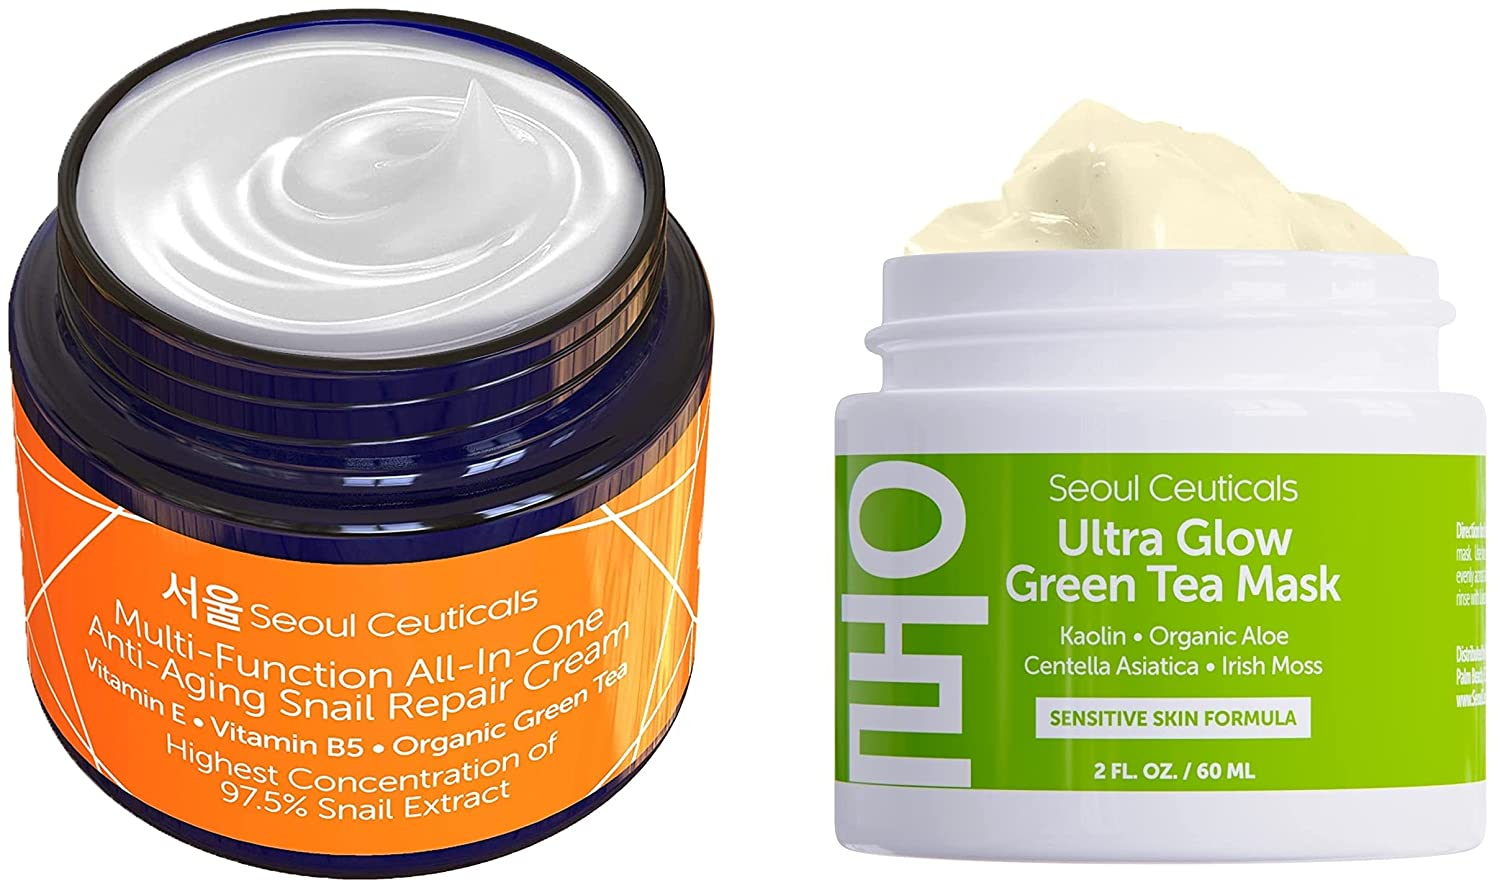 Korean Skin Care Set - Beauty products Contains Kor Mask Green Tea Face + Austin Mall